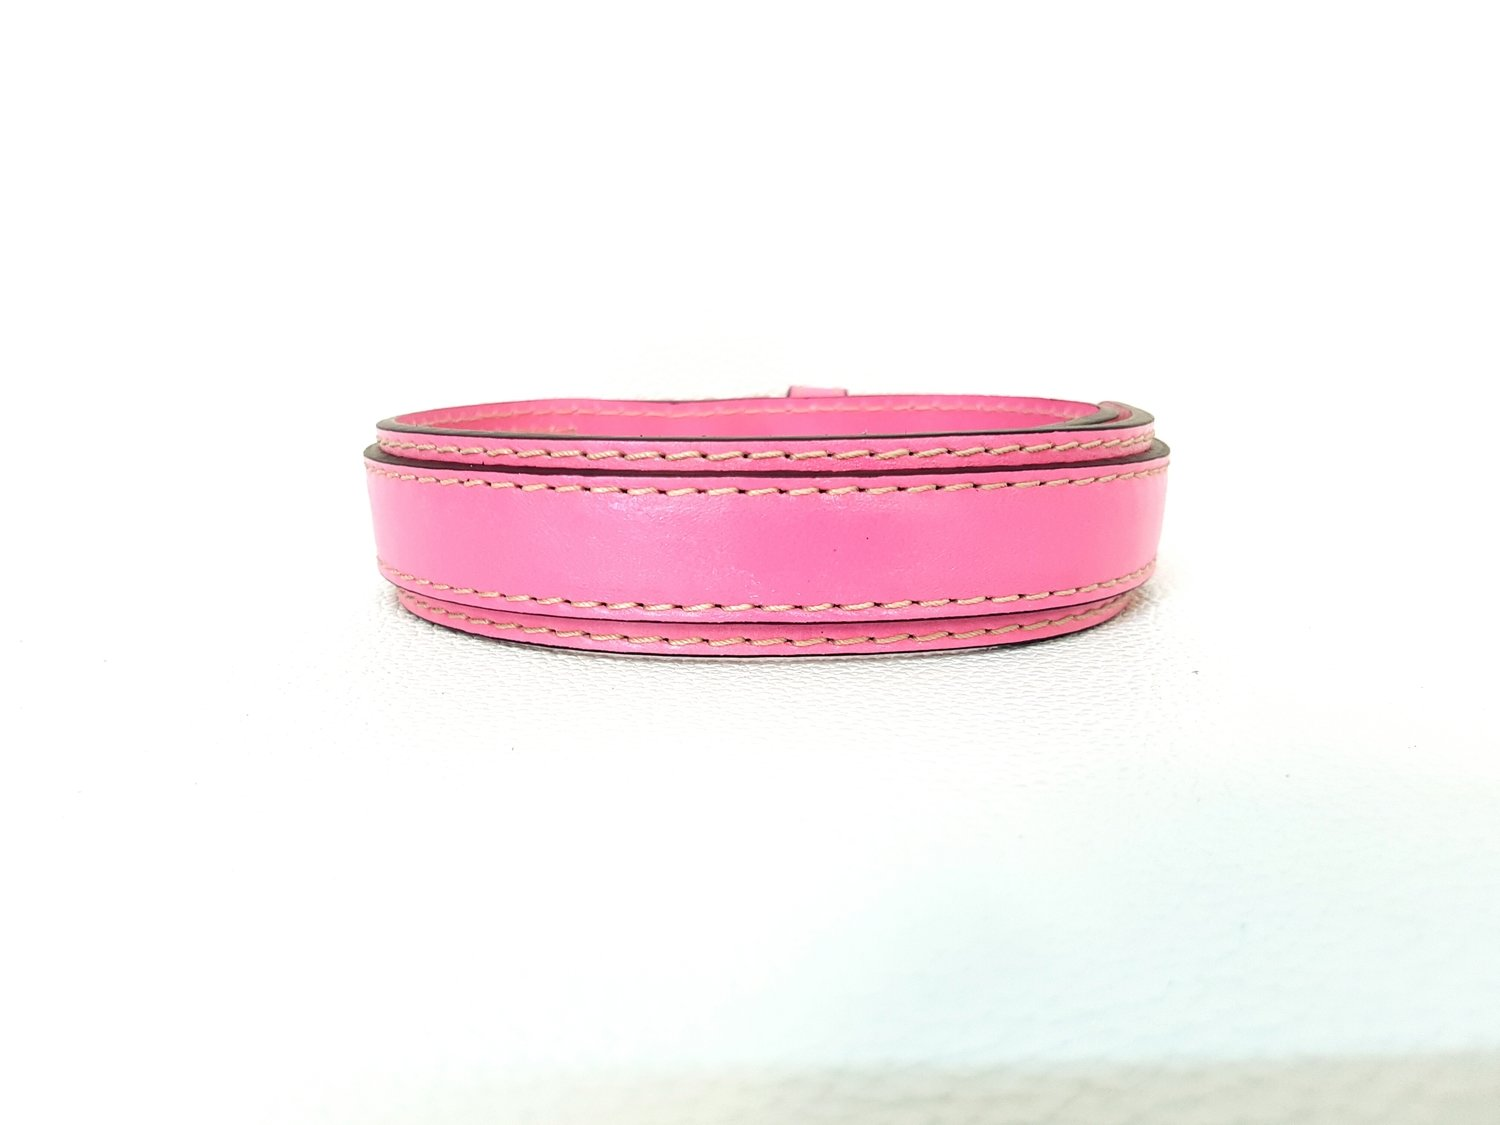 Rosa / Pink (3 cm / 1,18 inches)